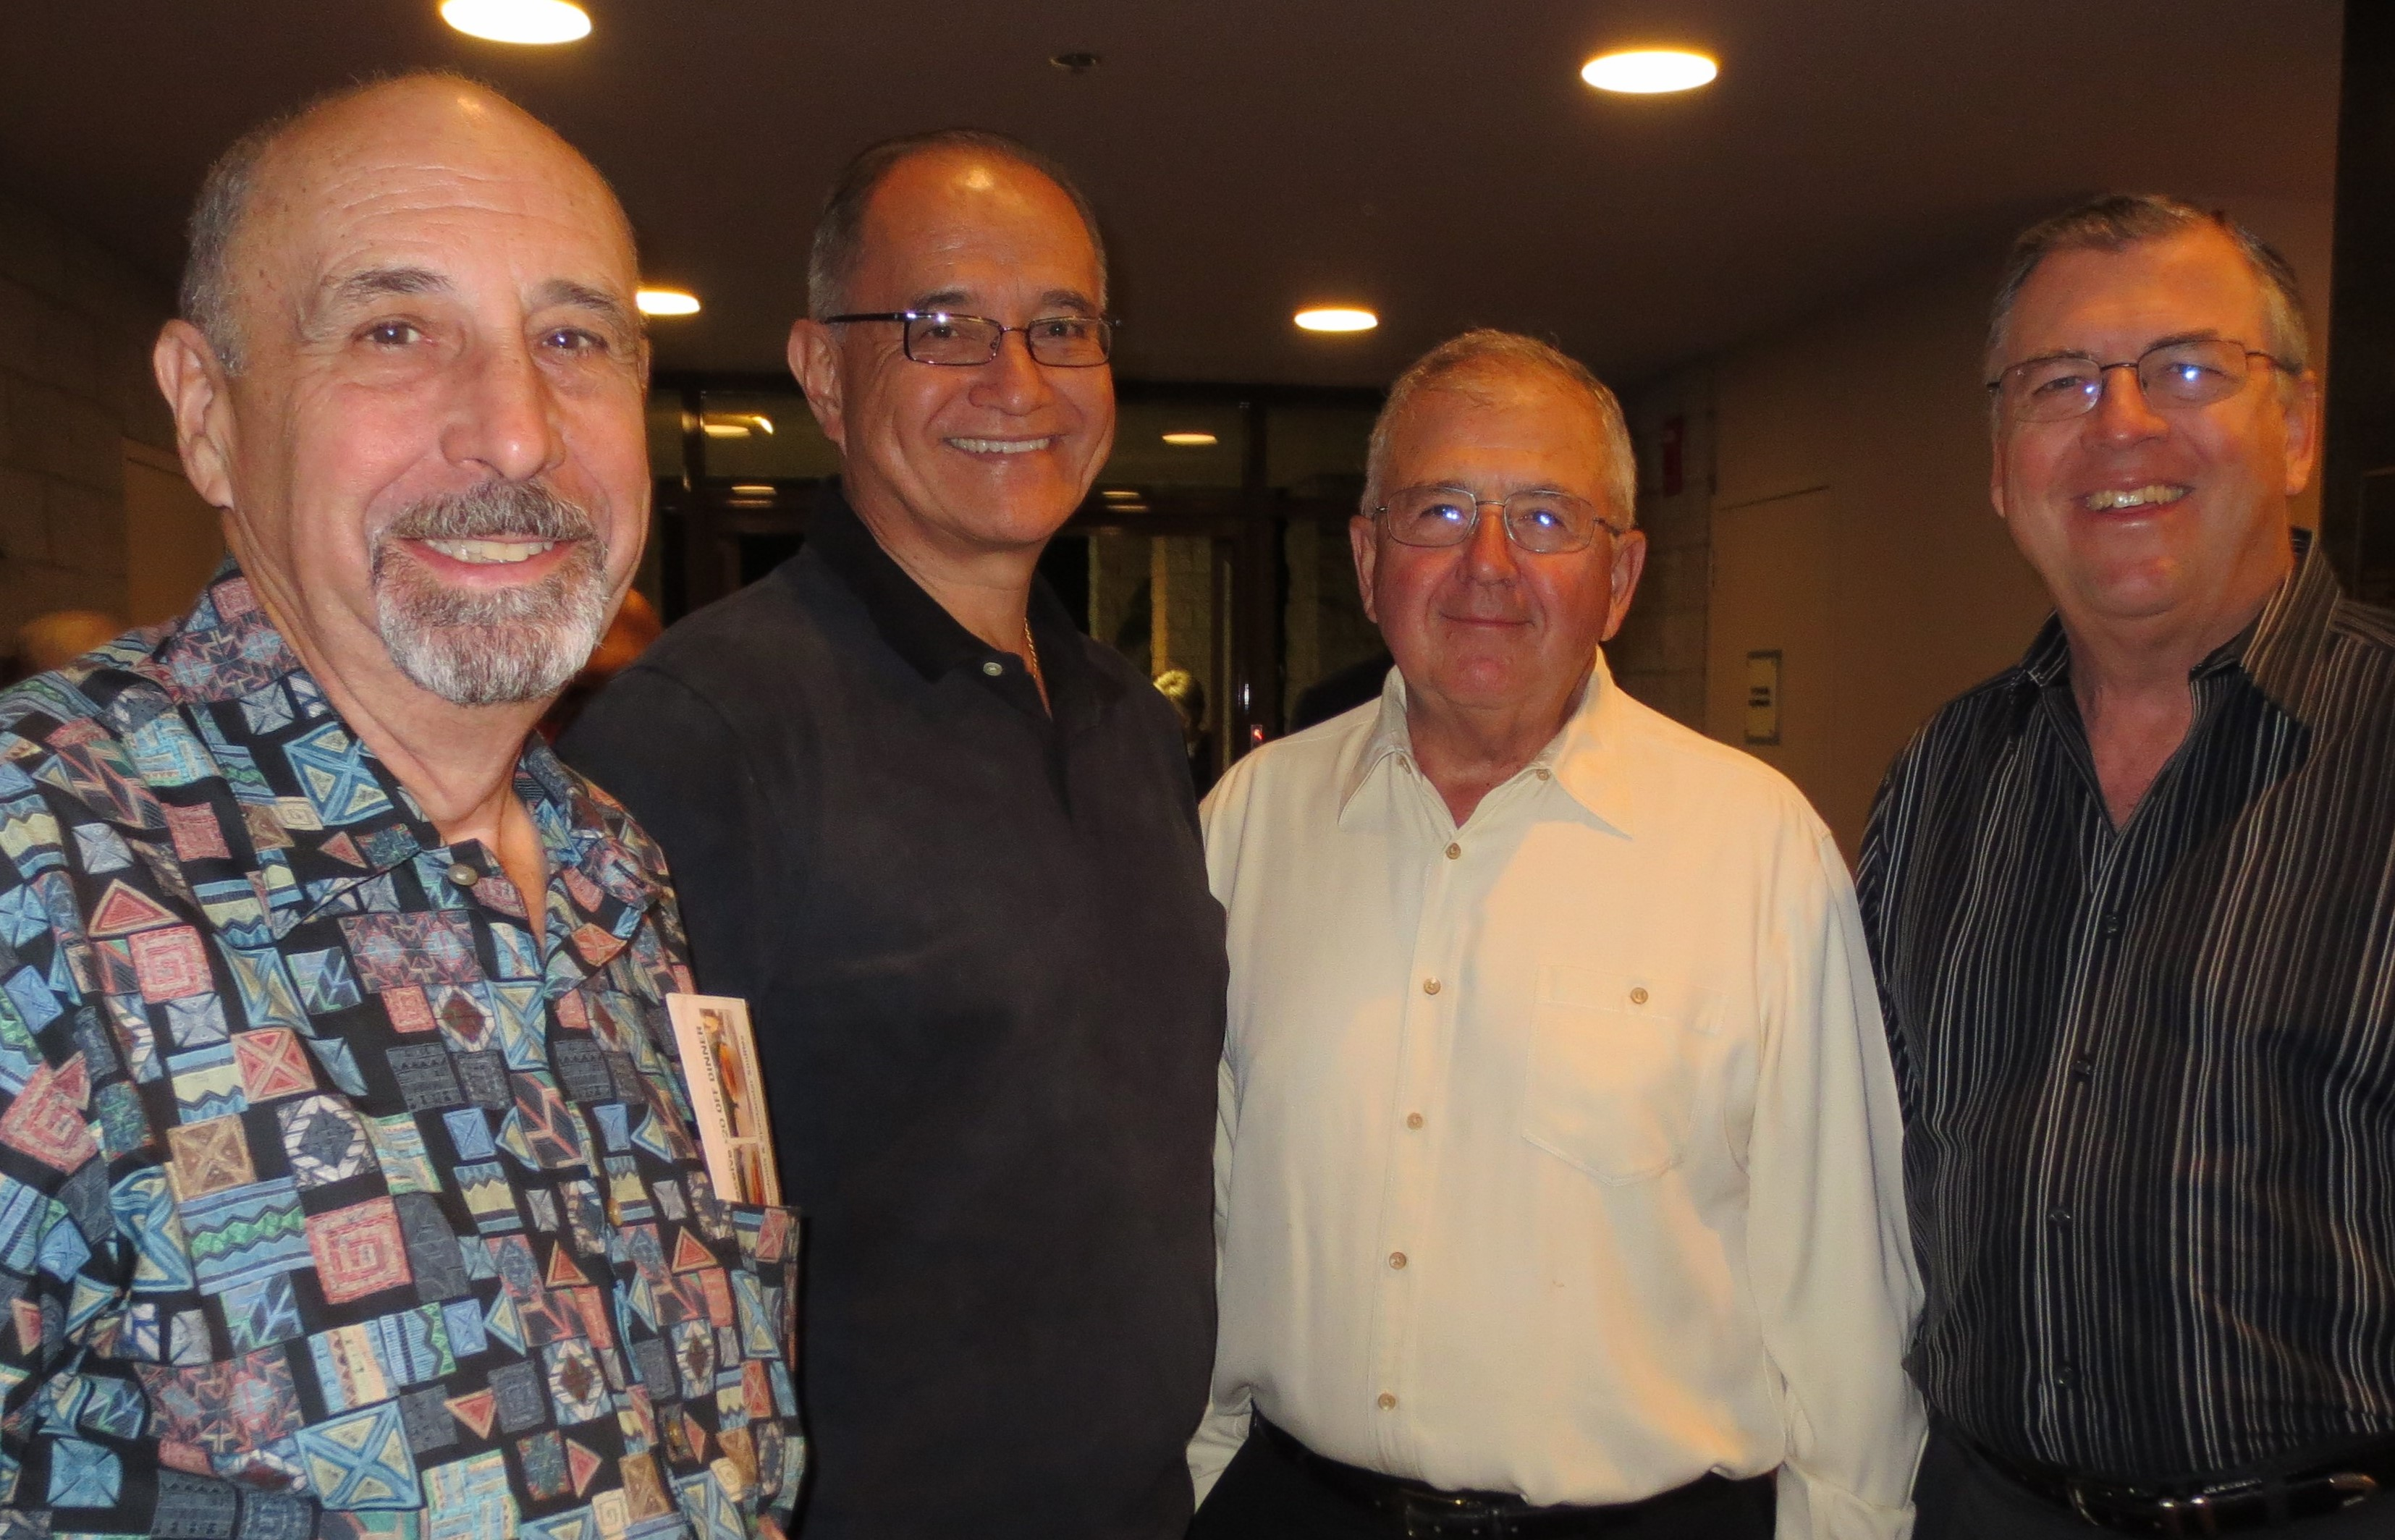 George Steele, Mark Schultz, Ron Salzetti and David Small inside the McCallum Lo